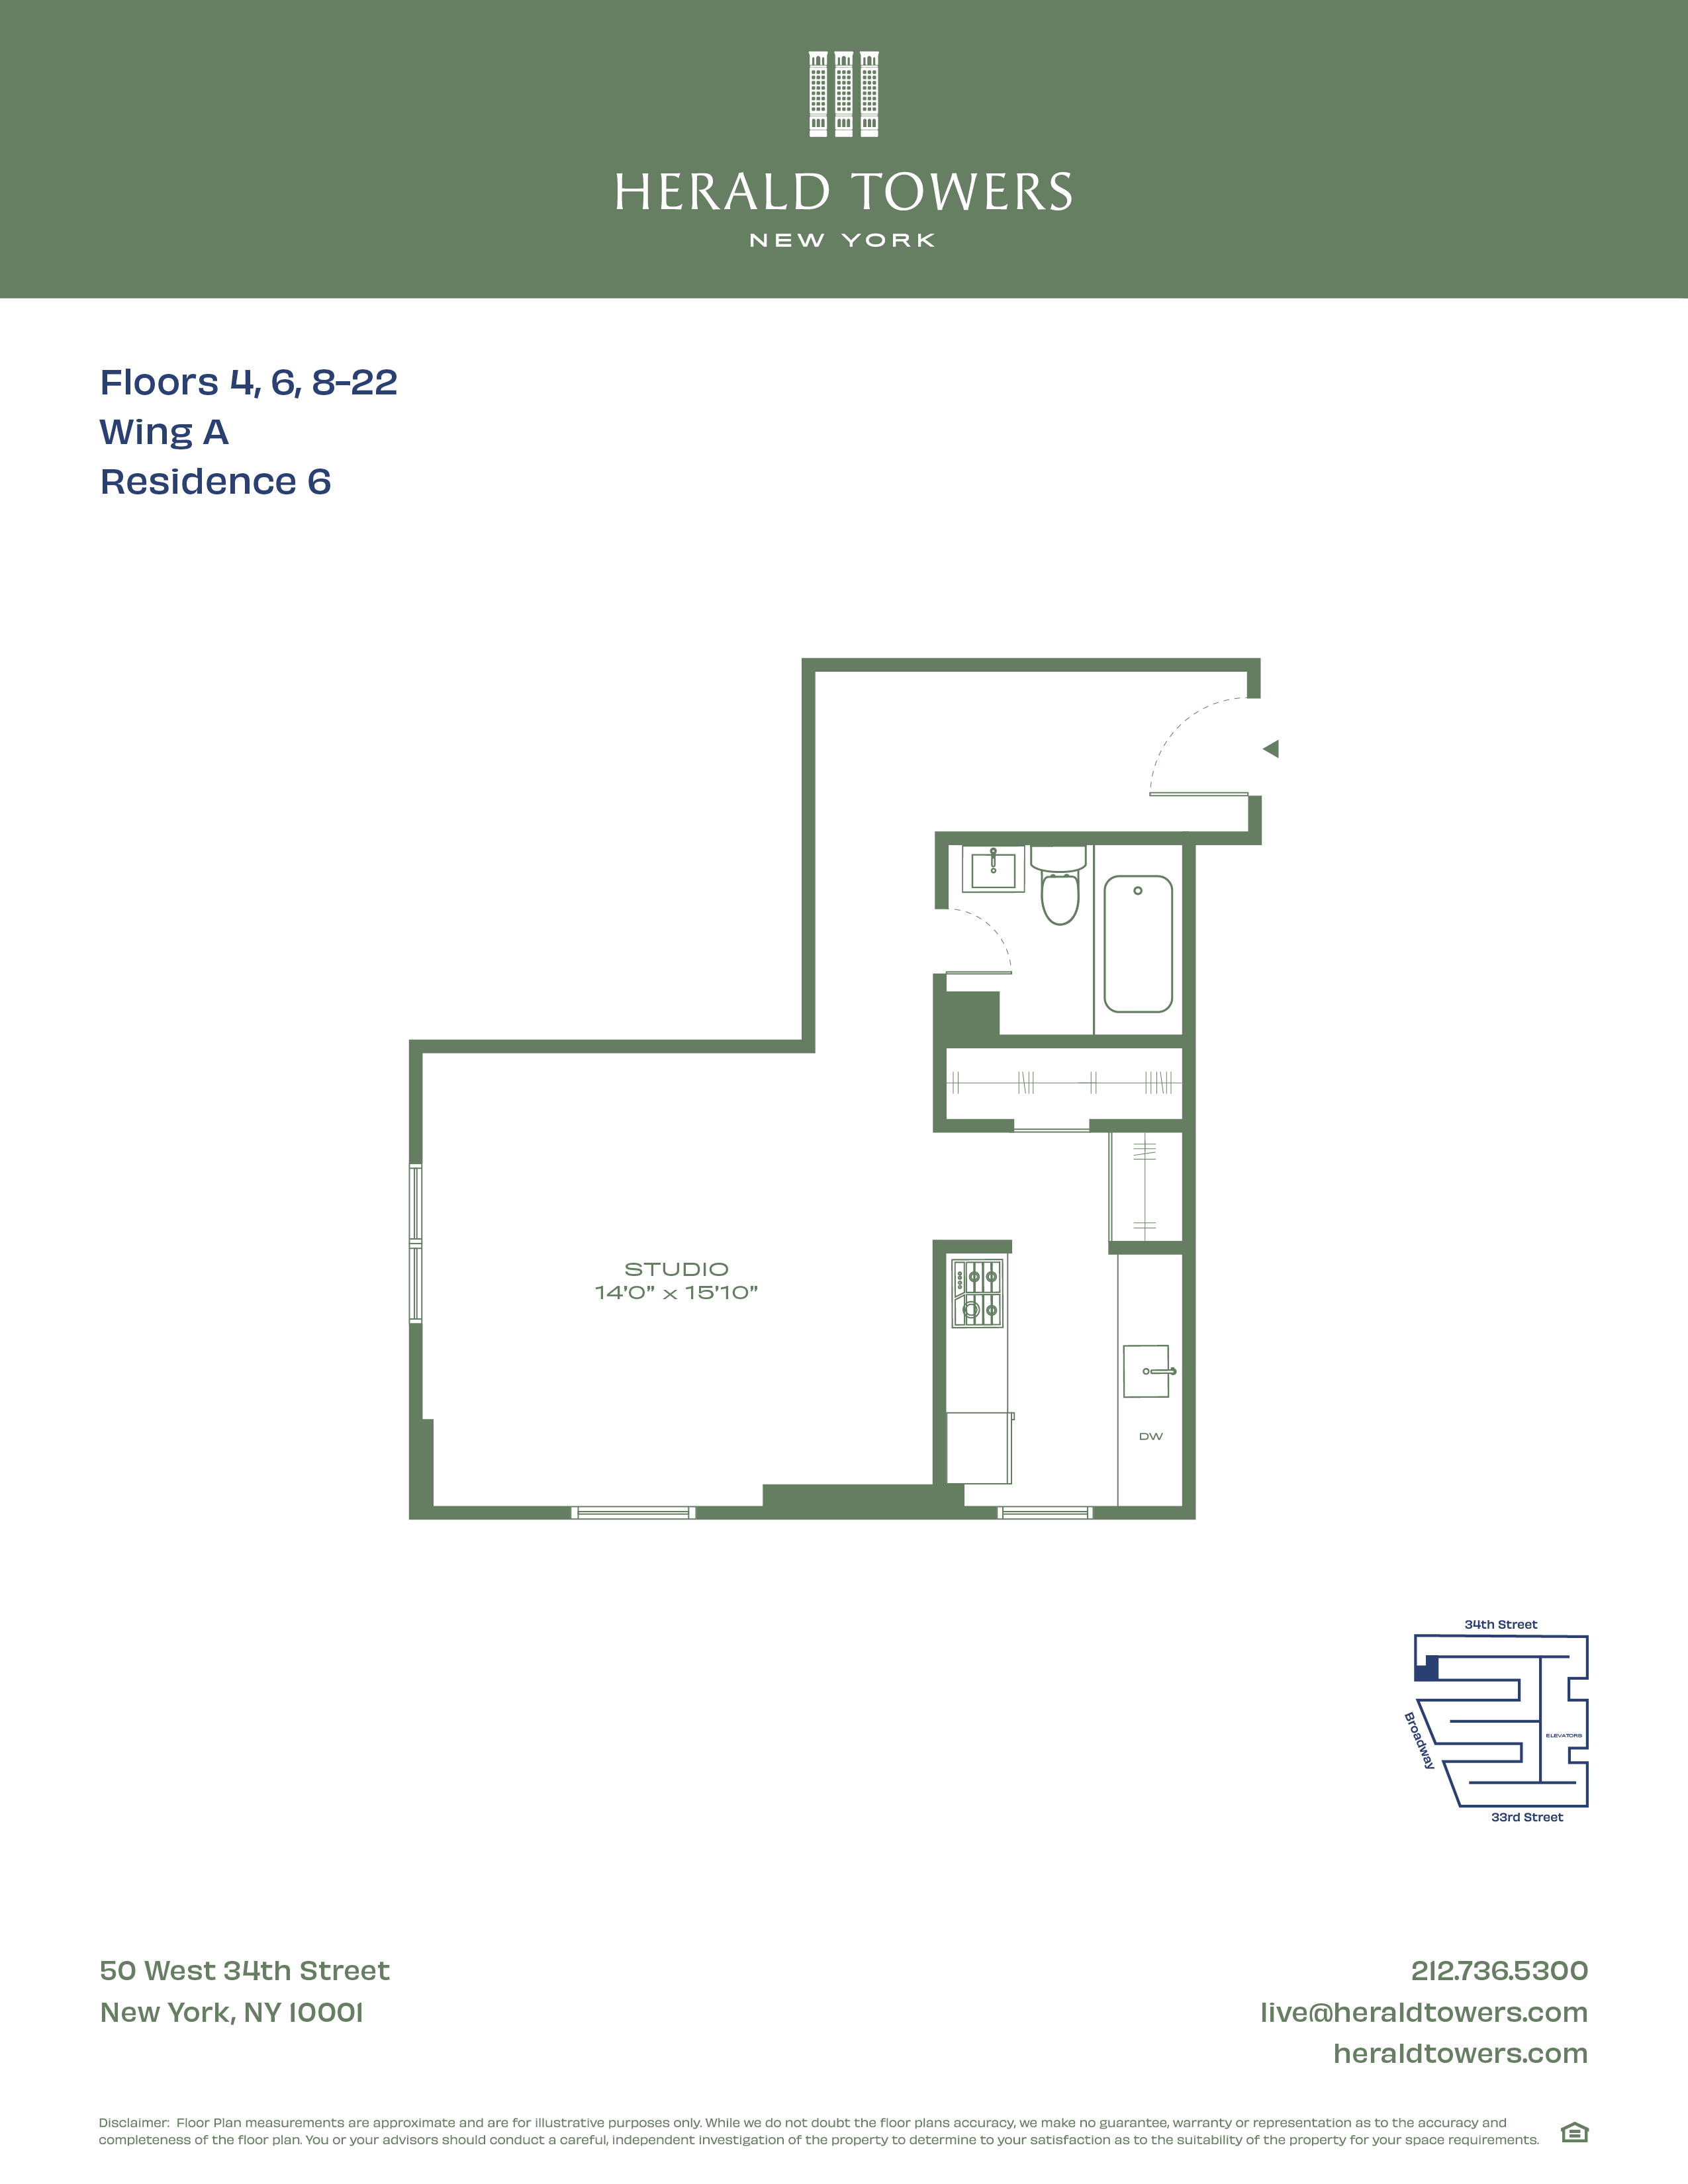 Floor plan for 17A06